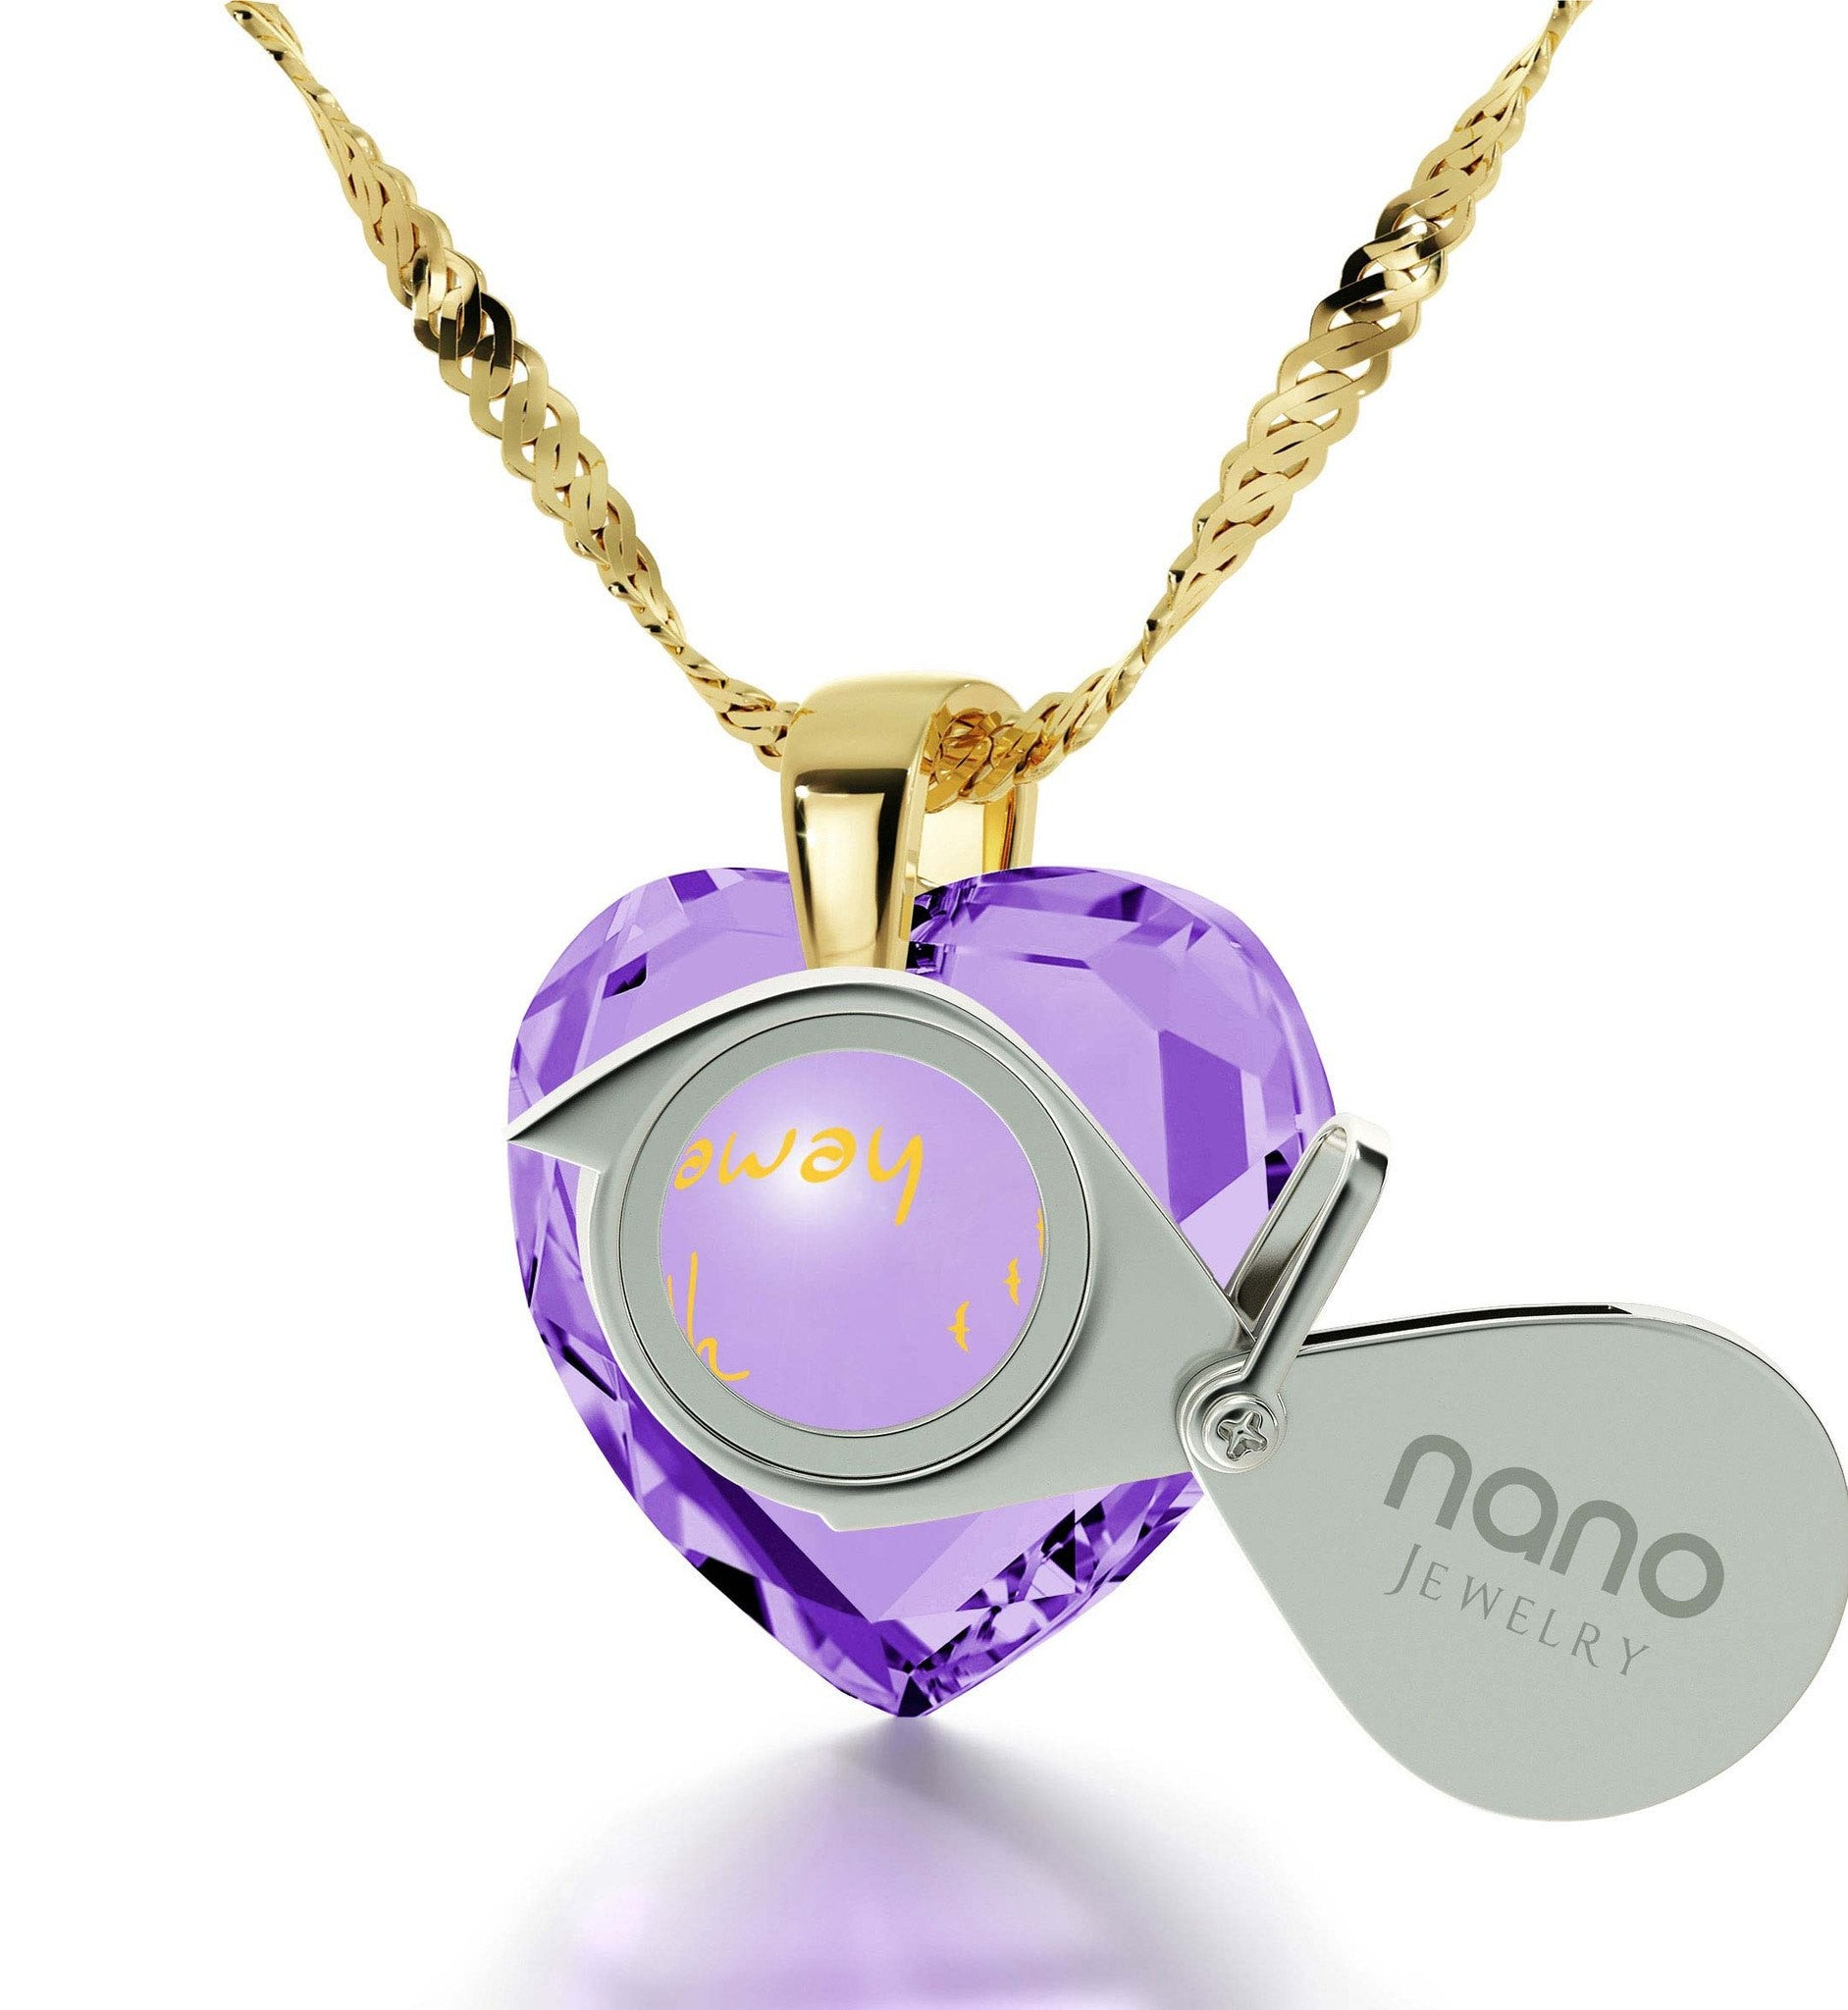 """What to Get Wife for Christmas,14k Gold Filled Fine Jewelry, Love Necklaces for Girlfriend, by Nano"""